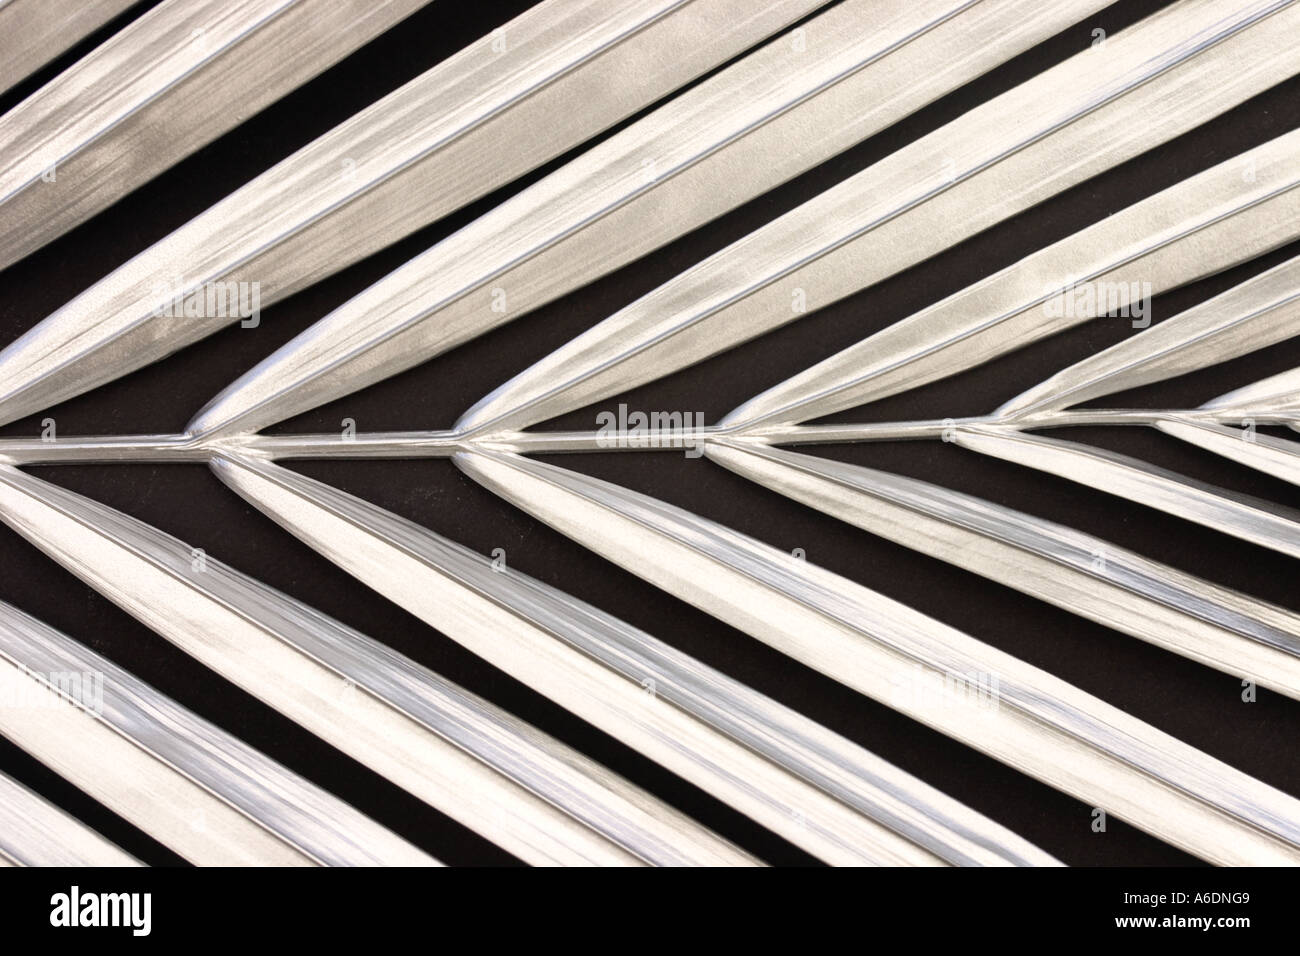 SILVER PALM FROND   BLACK BACKGROUND HORIZONTAL BAPDB5986 - Stock Image